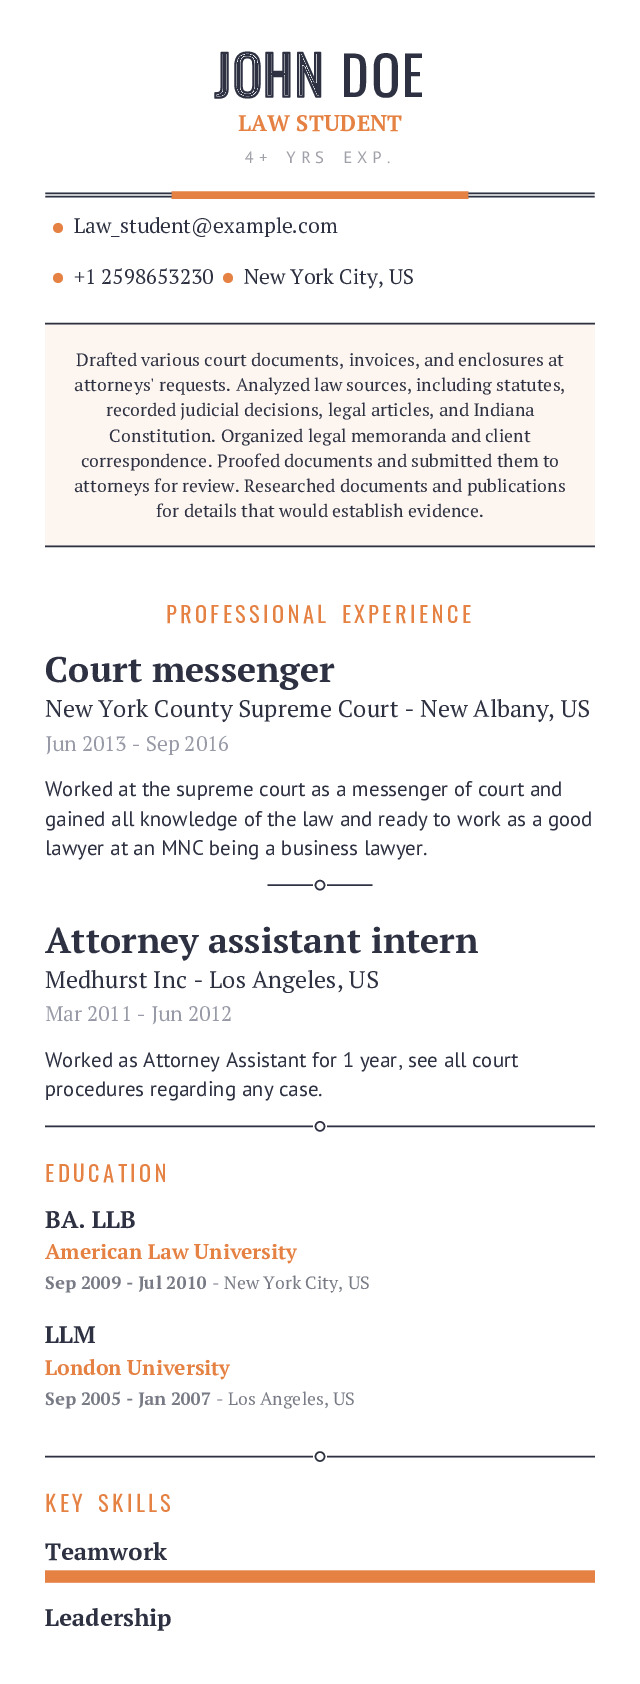 LAW STUDENT Mobile Resume Example